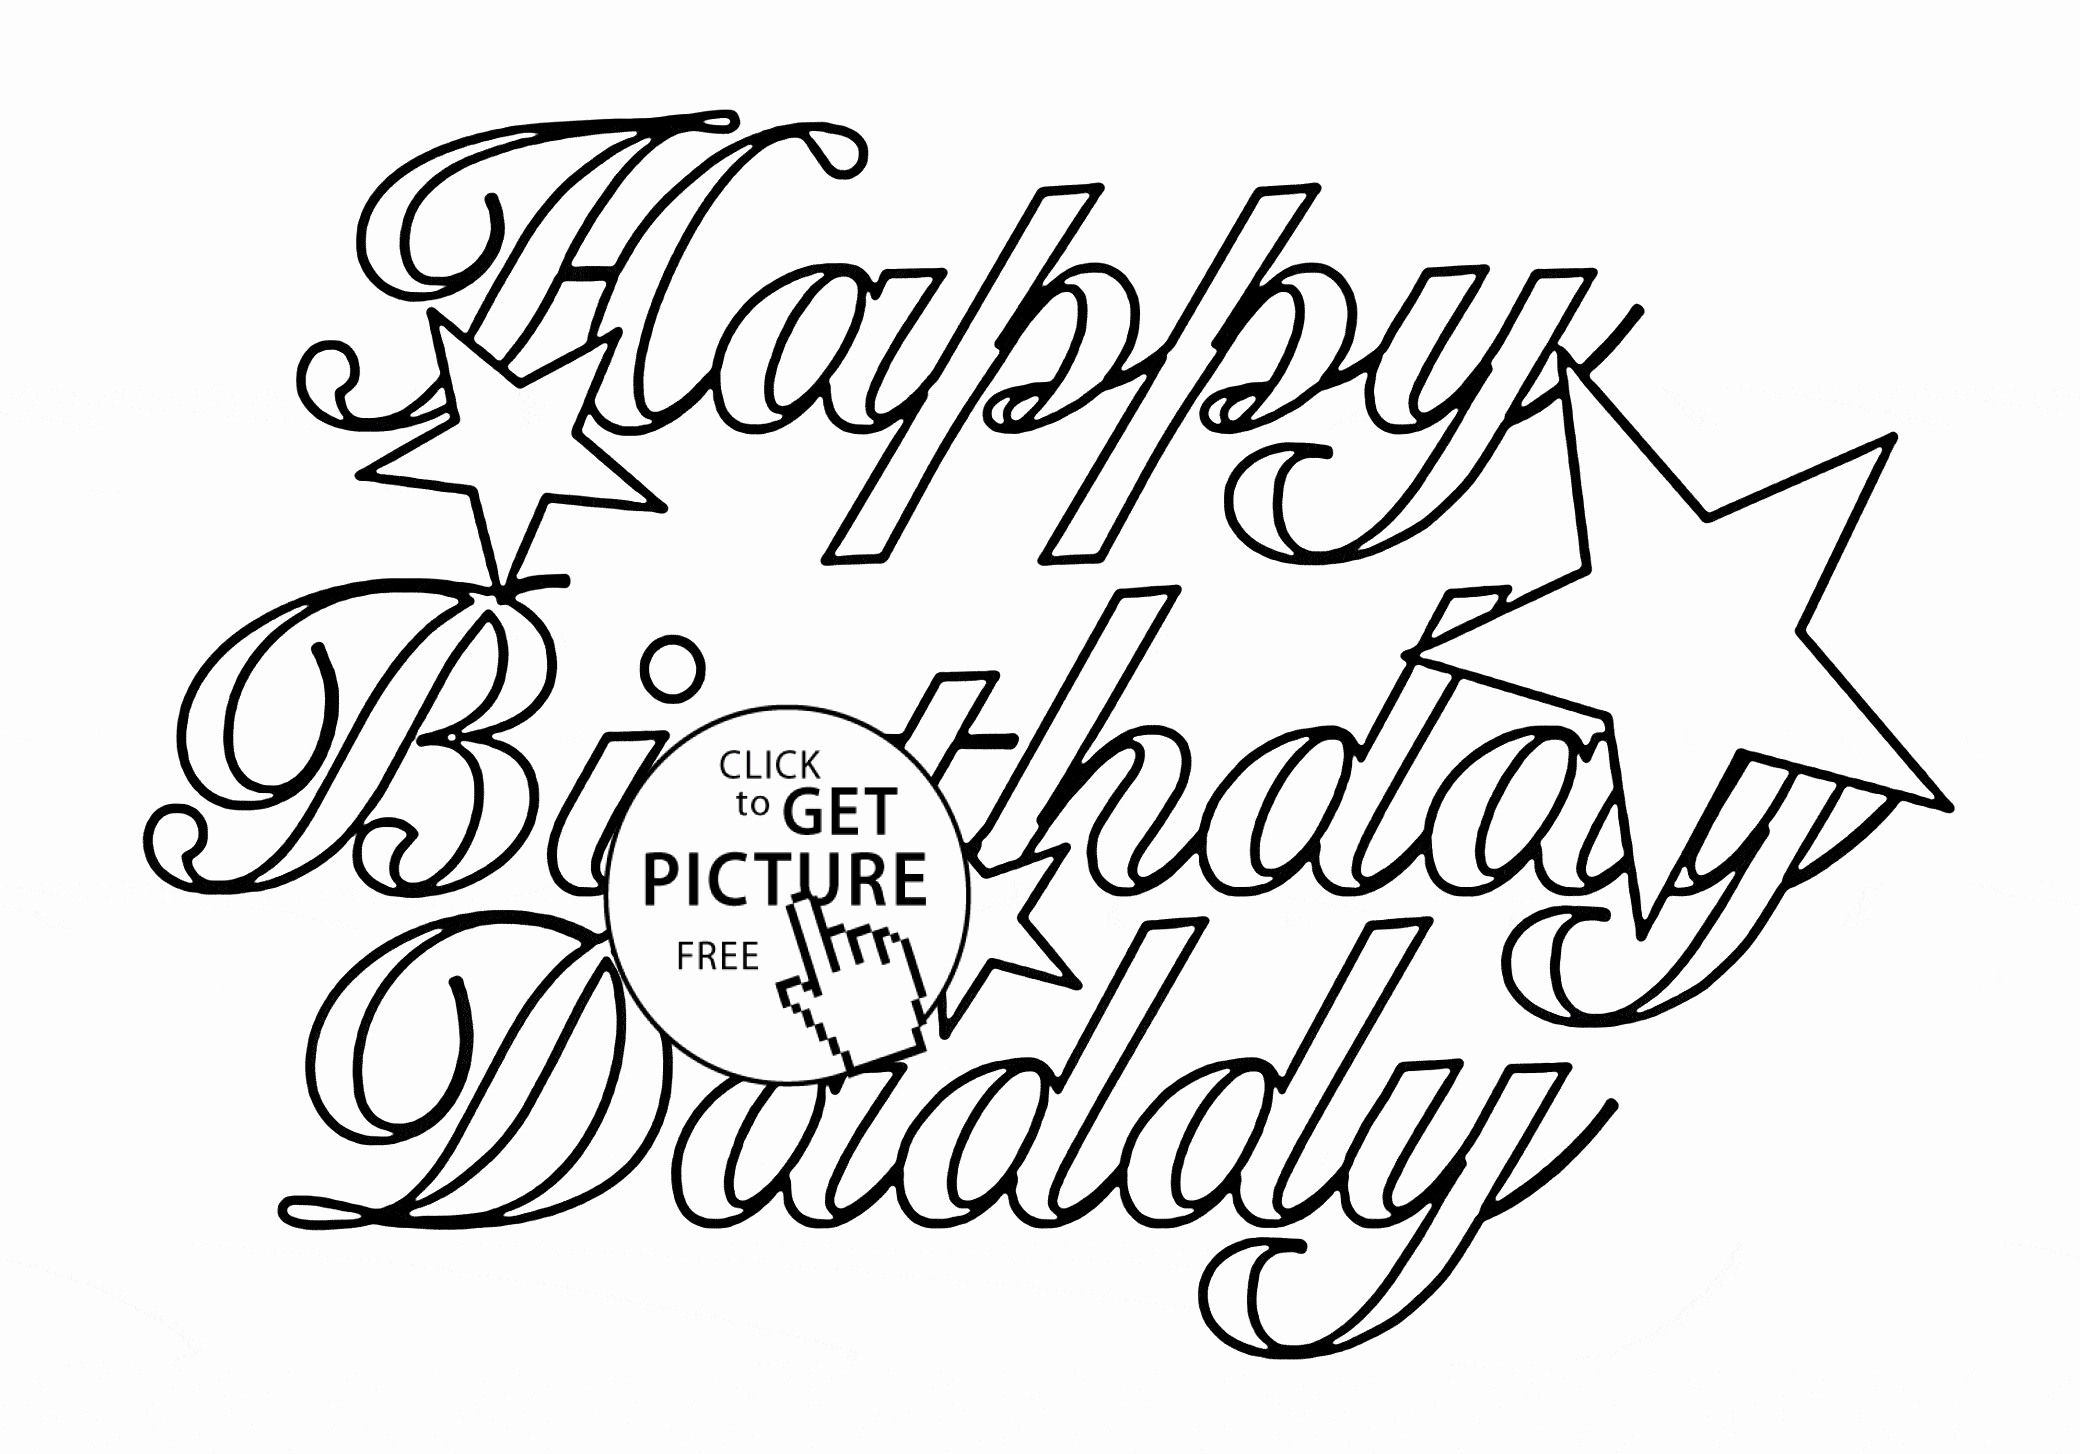 happy birthday drawings for dad ; happy-birthday-dad-cards-printable-lovely-happy-birthday-coloring-cards-beautiful-free-printable-happy-of-happy-birthday-dad-cards-printable